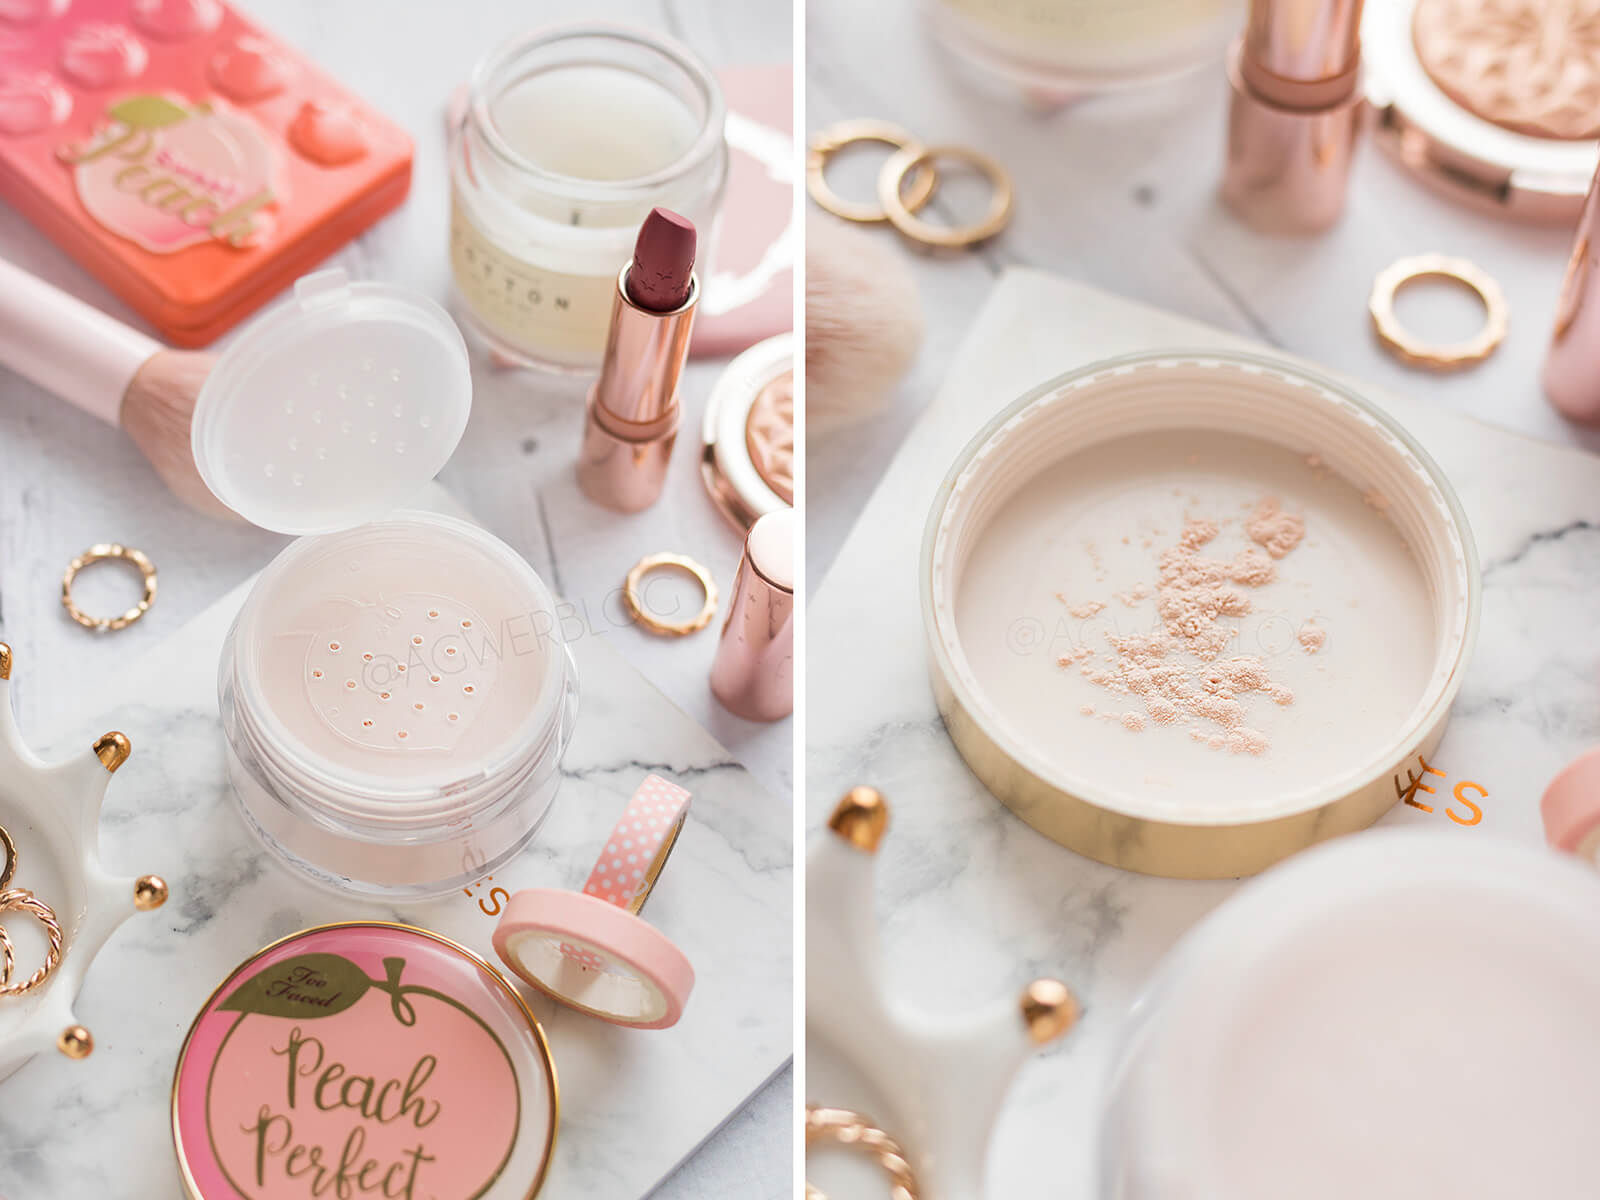 puder too faced peach perfect opinie